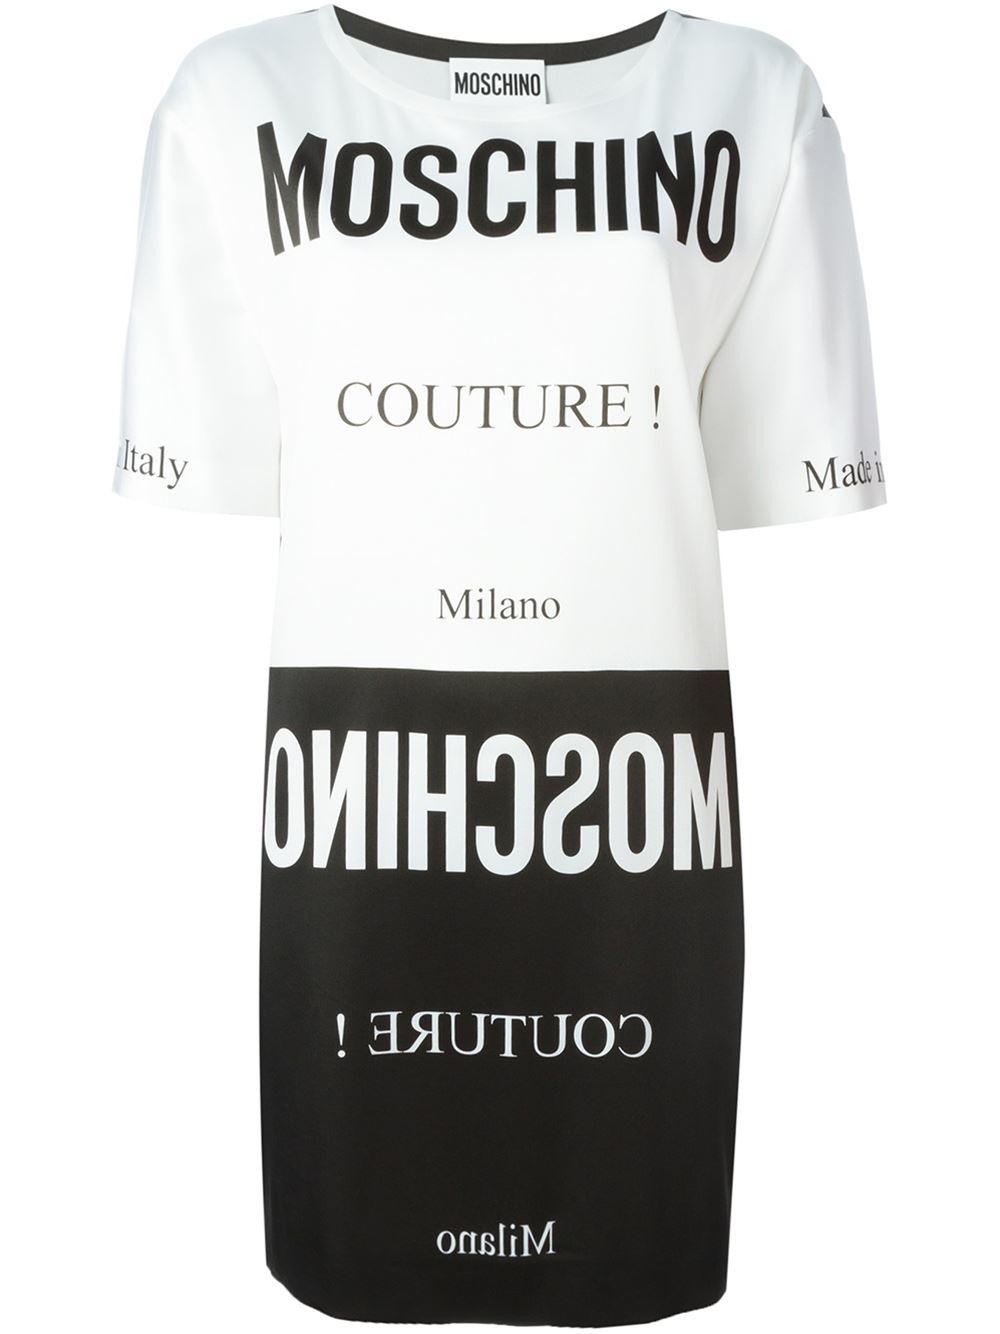 93612d8ae5b8a Moschino T Shirt Dress White - Dress Foto and Picture